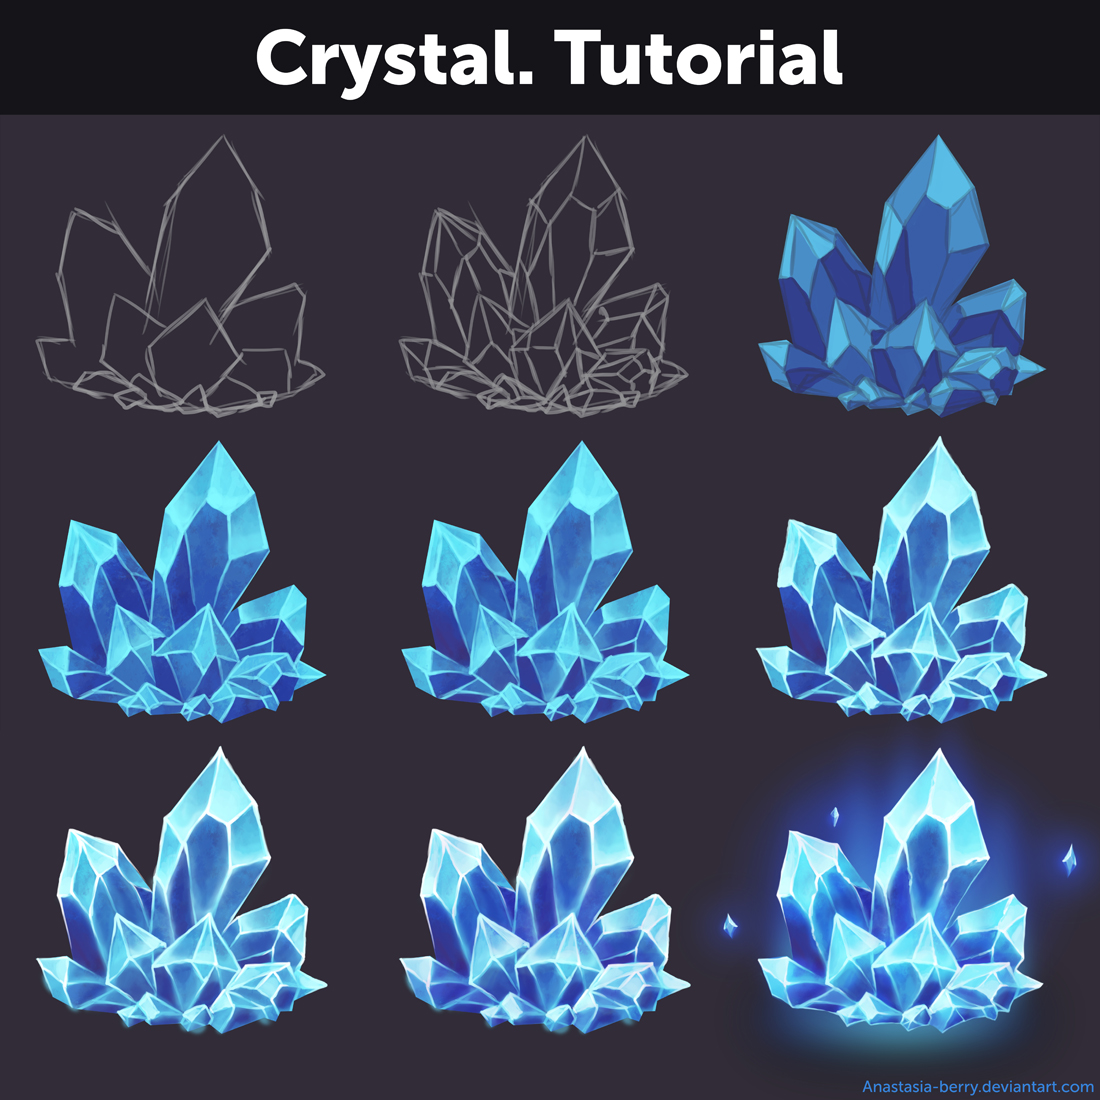 Crystal tutorial by anastasia berry on deviantart for Paintings of crystals